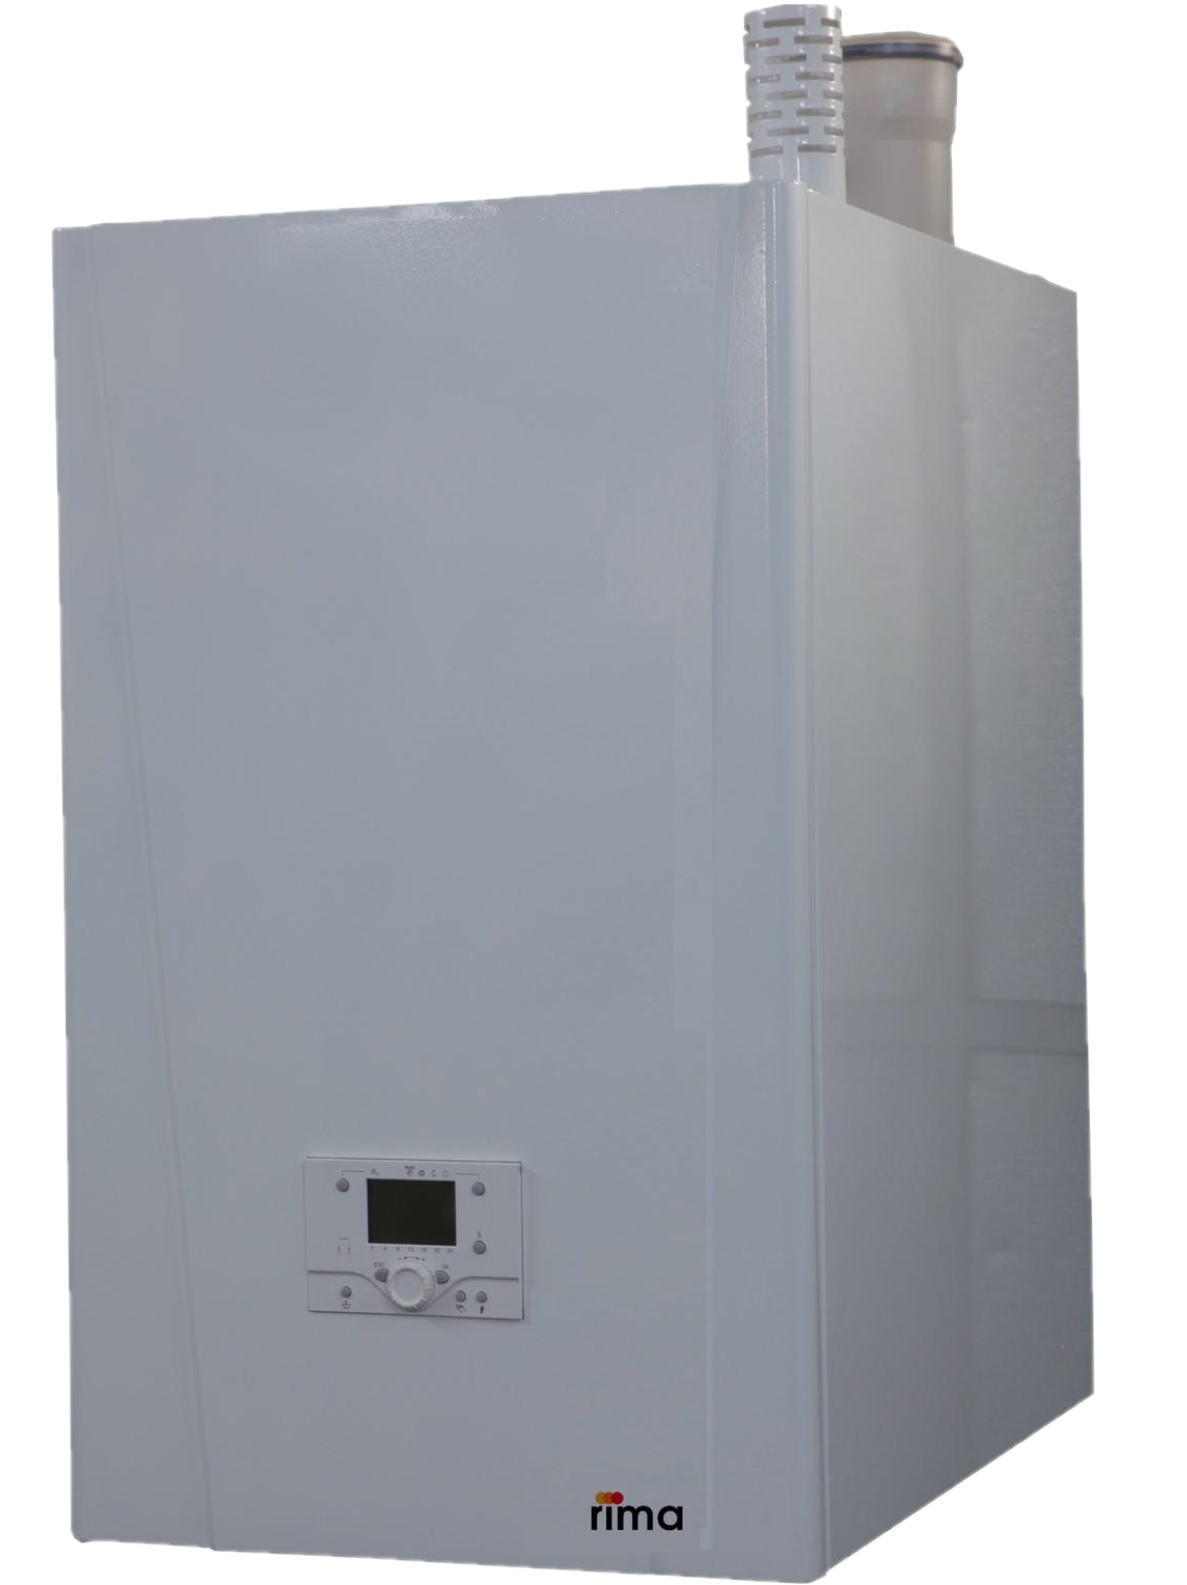 Ongas 300W Wall Hung Condensing Boilers